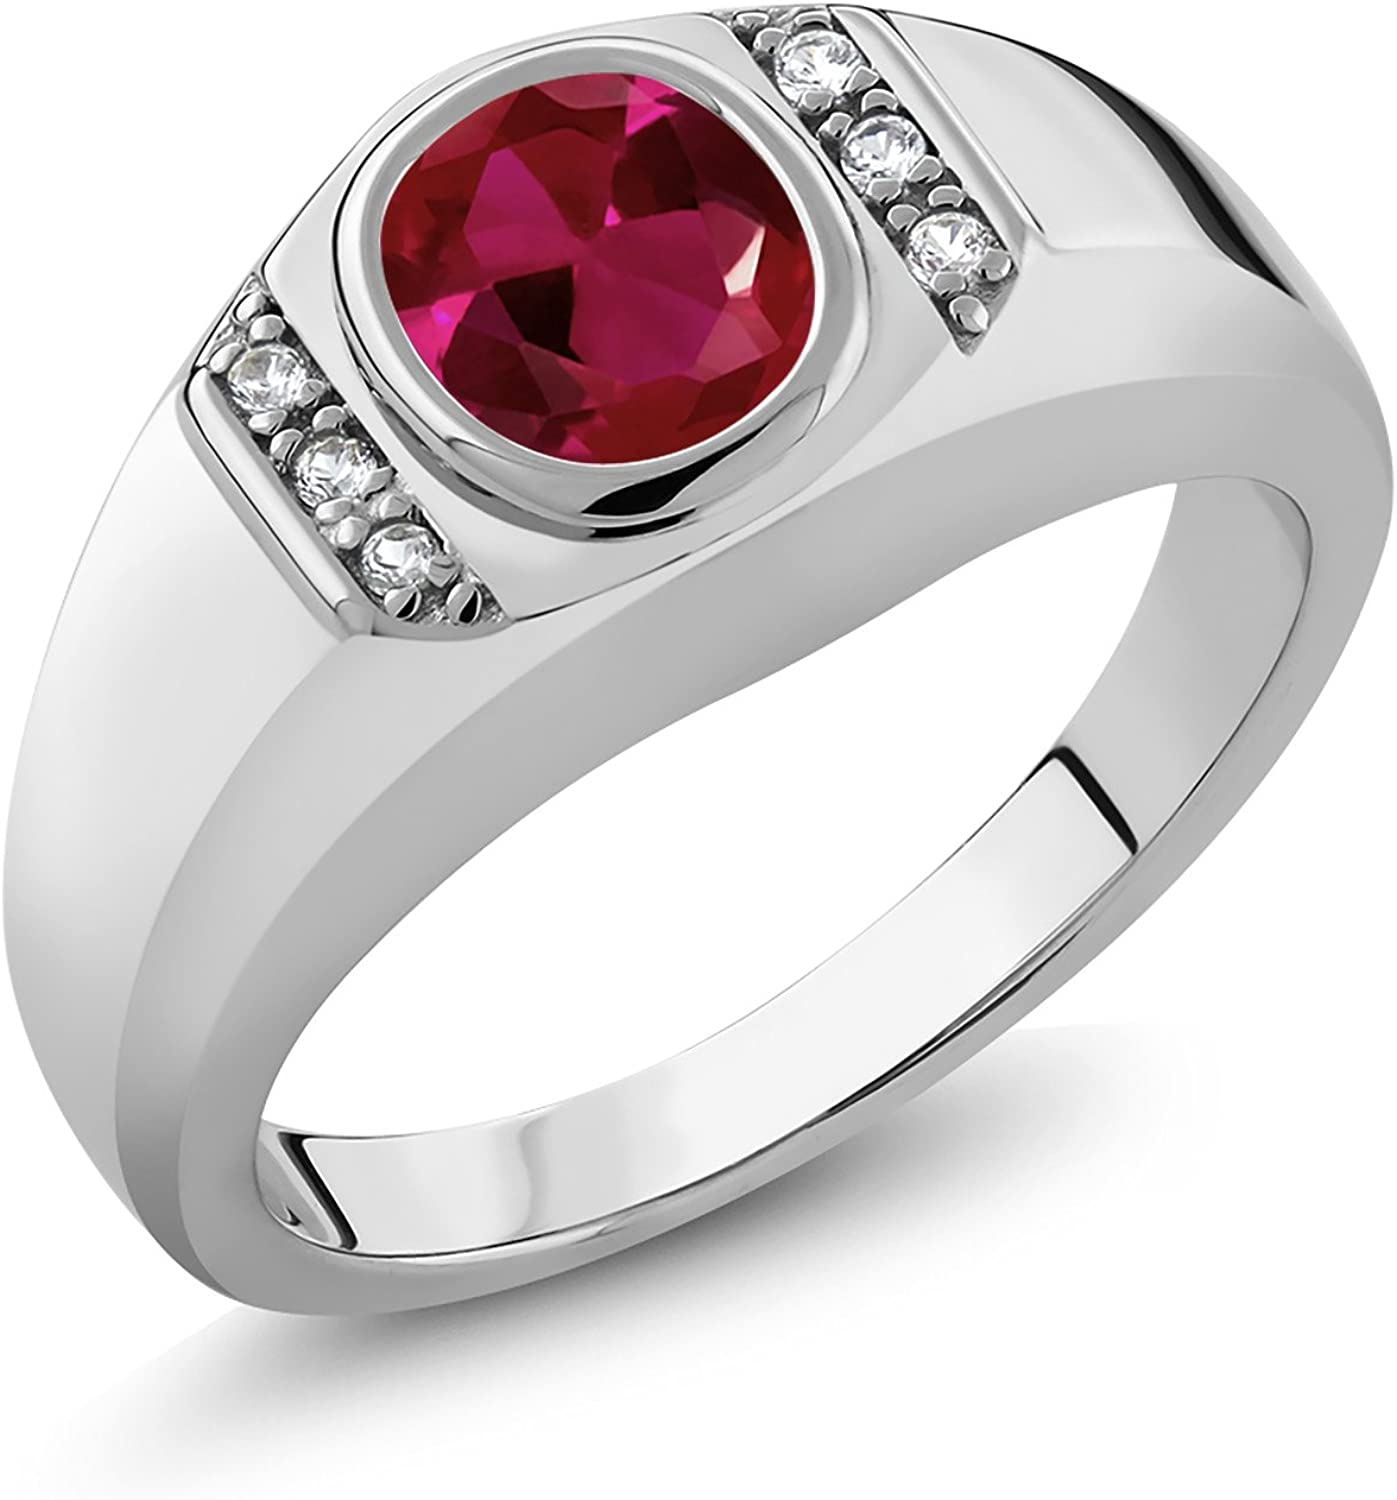 Gem Stone King Men's 925 Sterling Silver Red Created Ruby and White Created Sapphire Ring (1.21 Ct)